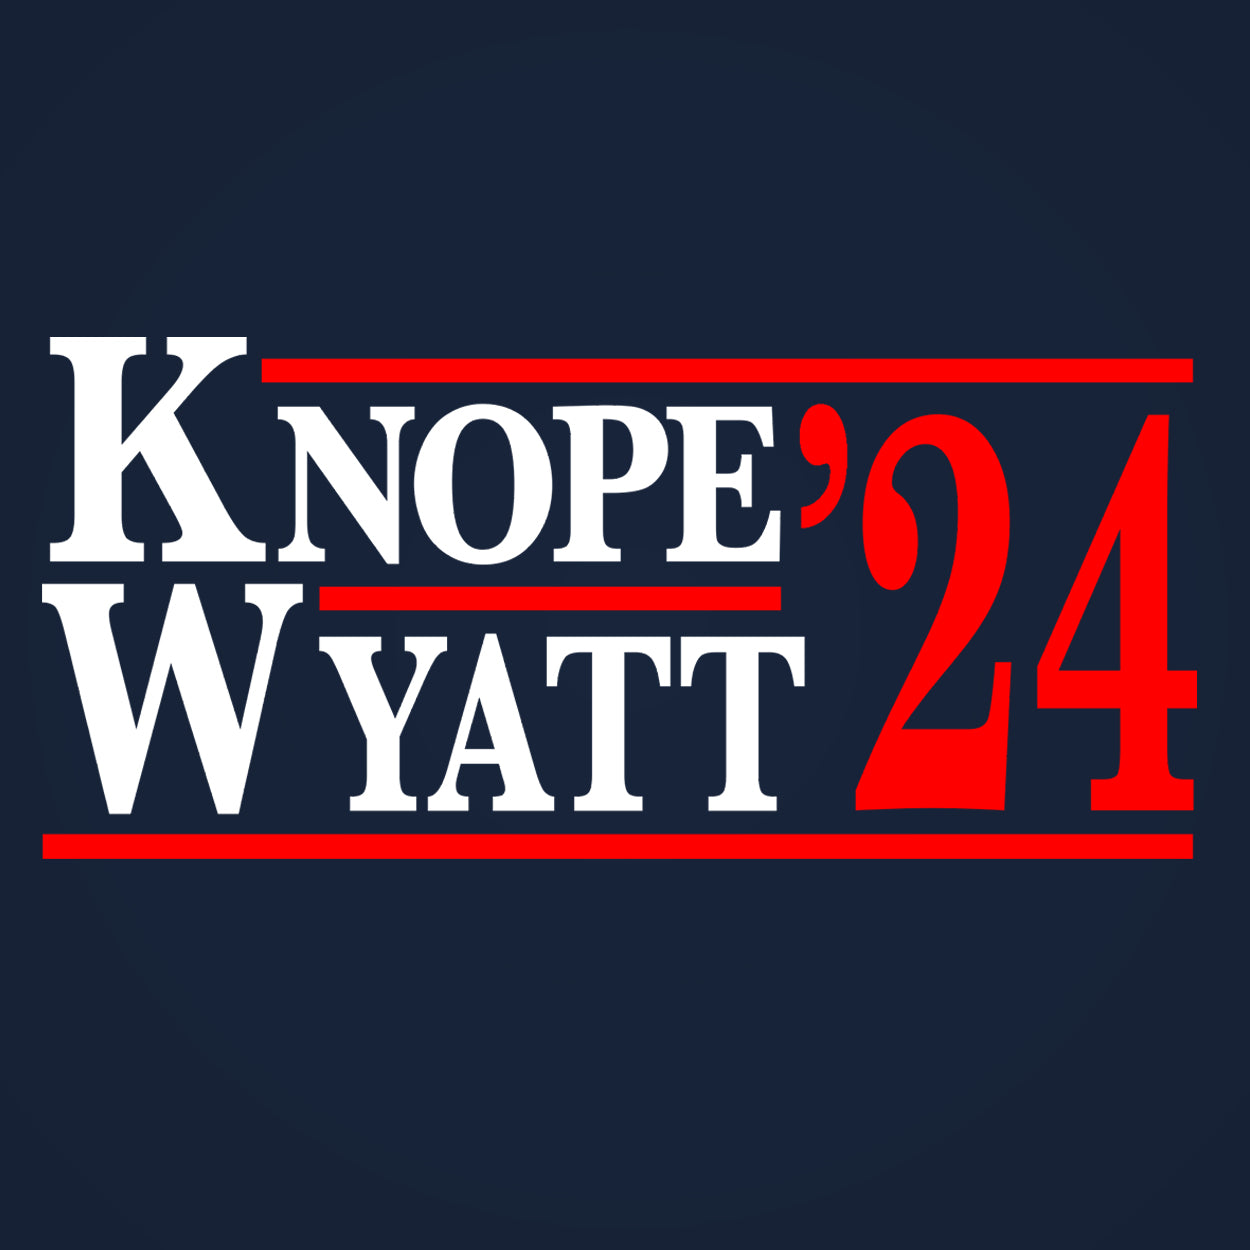 KNOPE WYATT 2020 Election - DonkeyTees